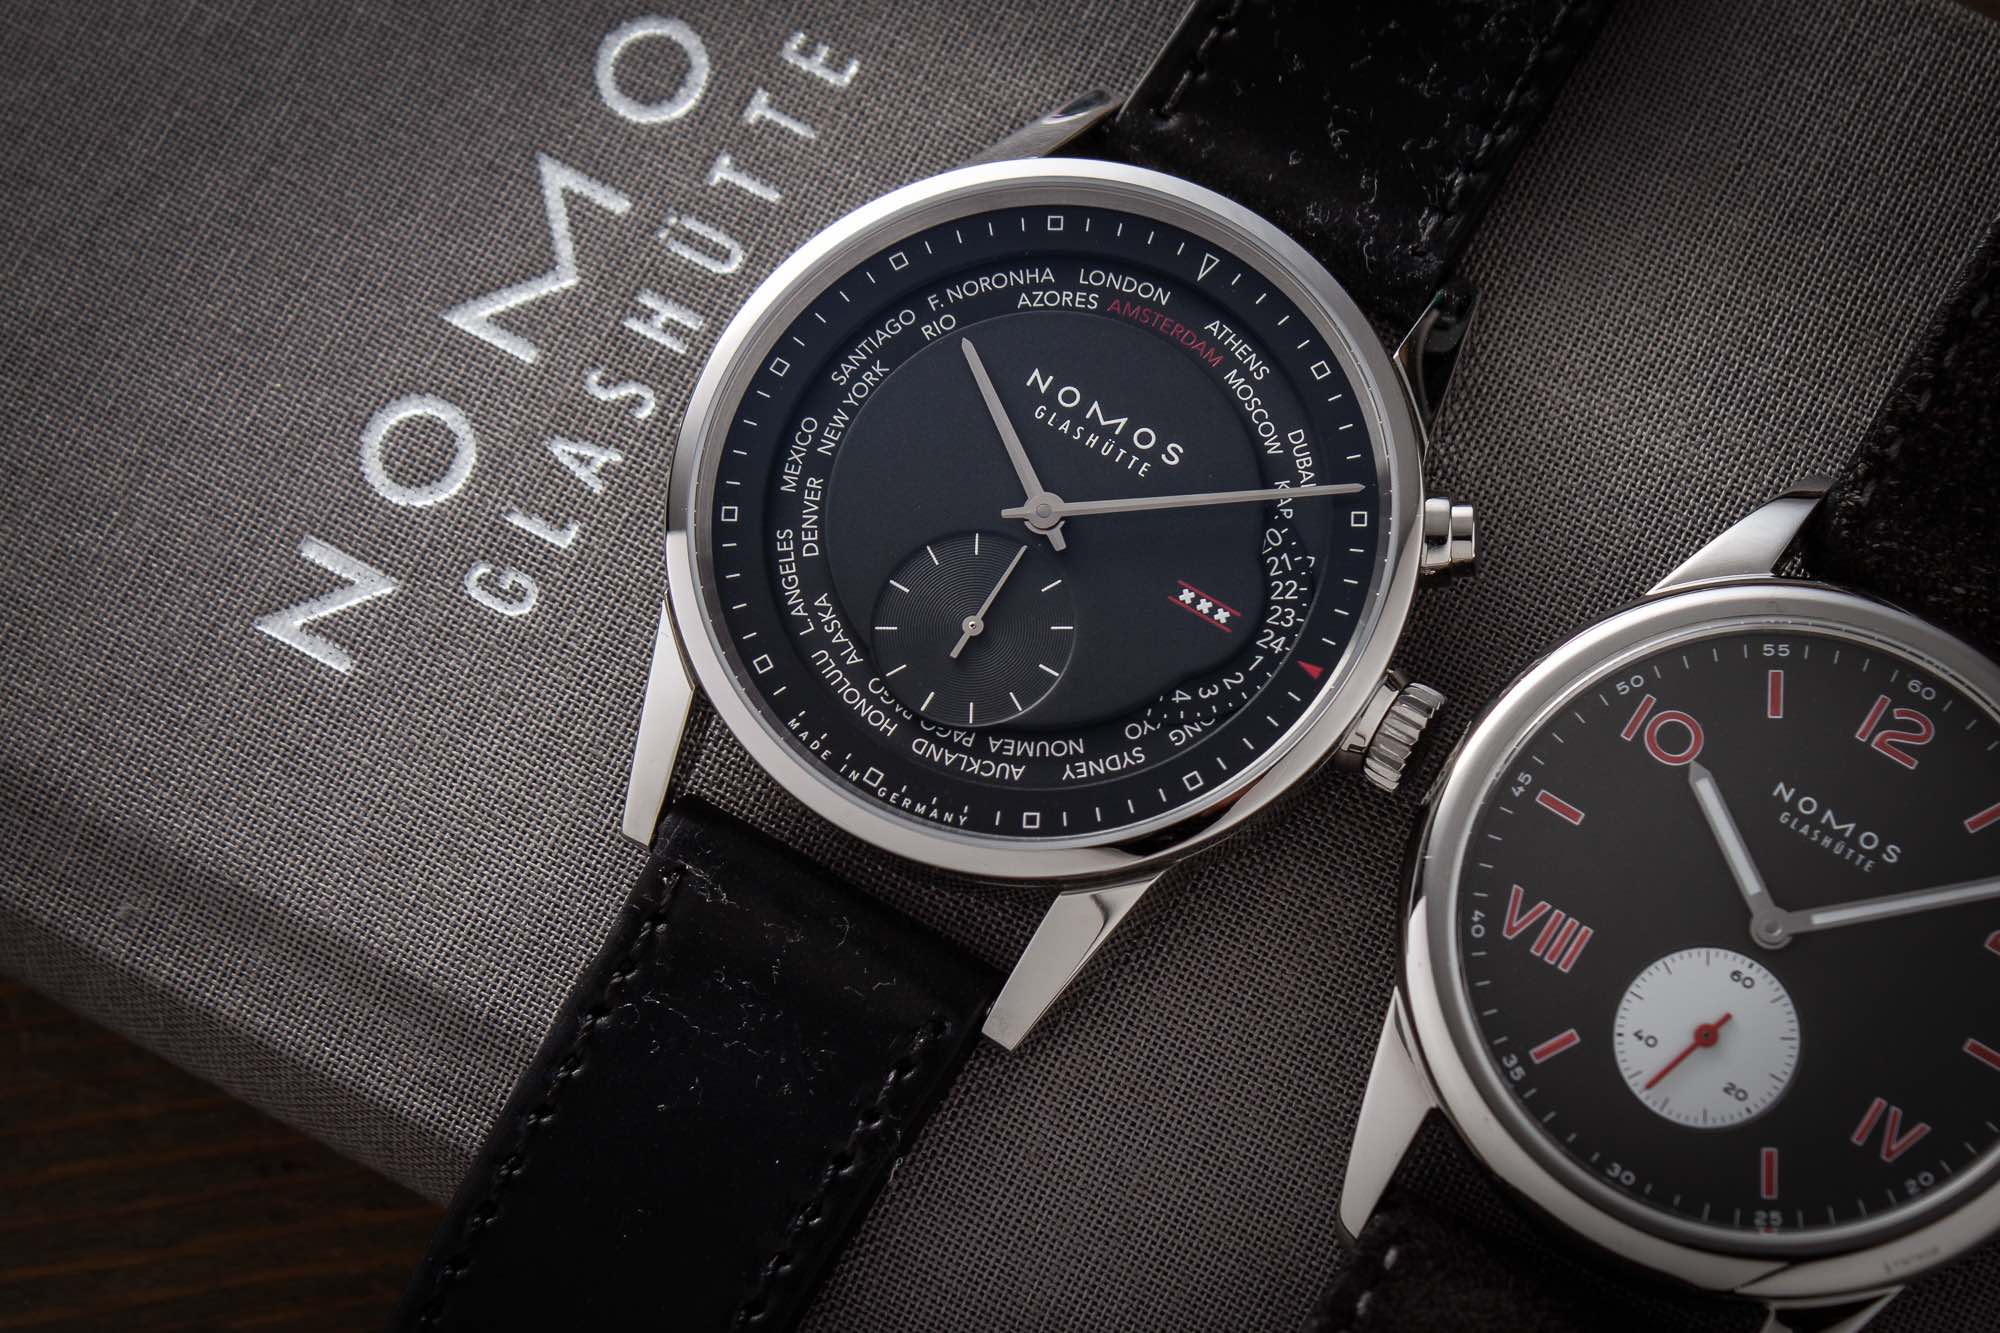 Nomos Zurich Weltzeit Amsterdam Edition For ACE Jewelers - 2